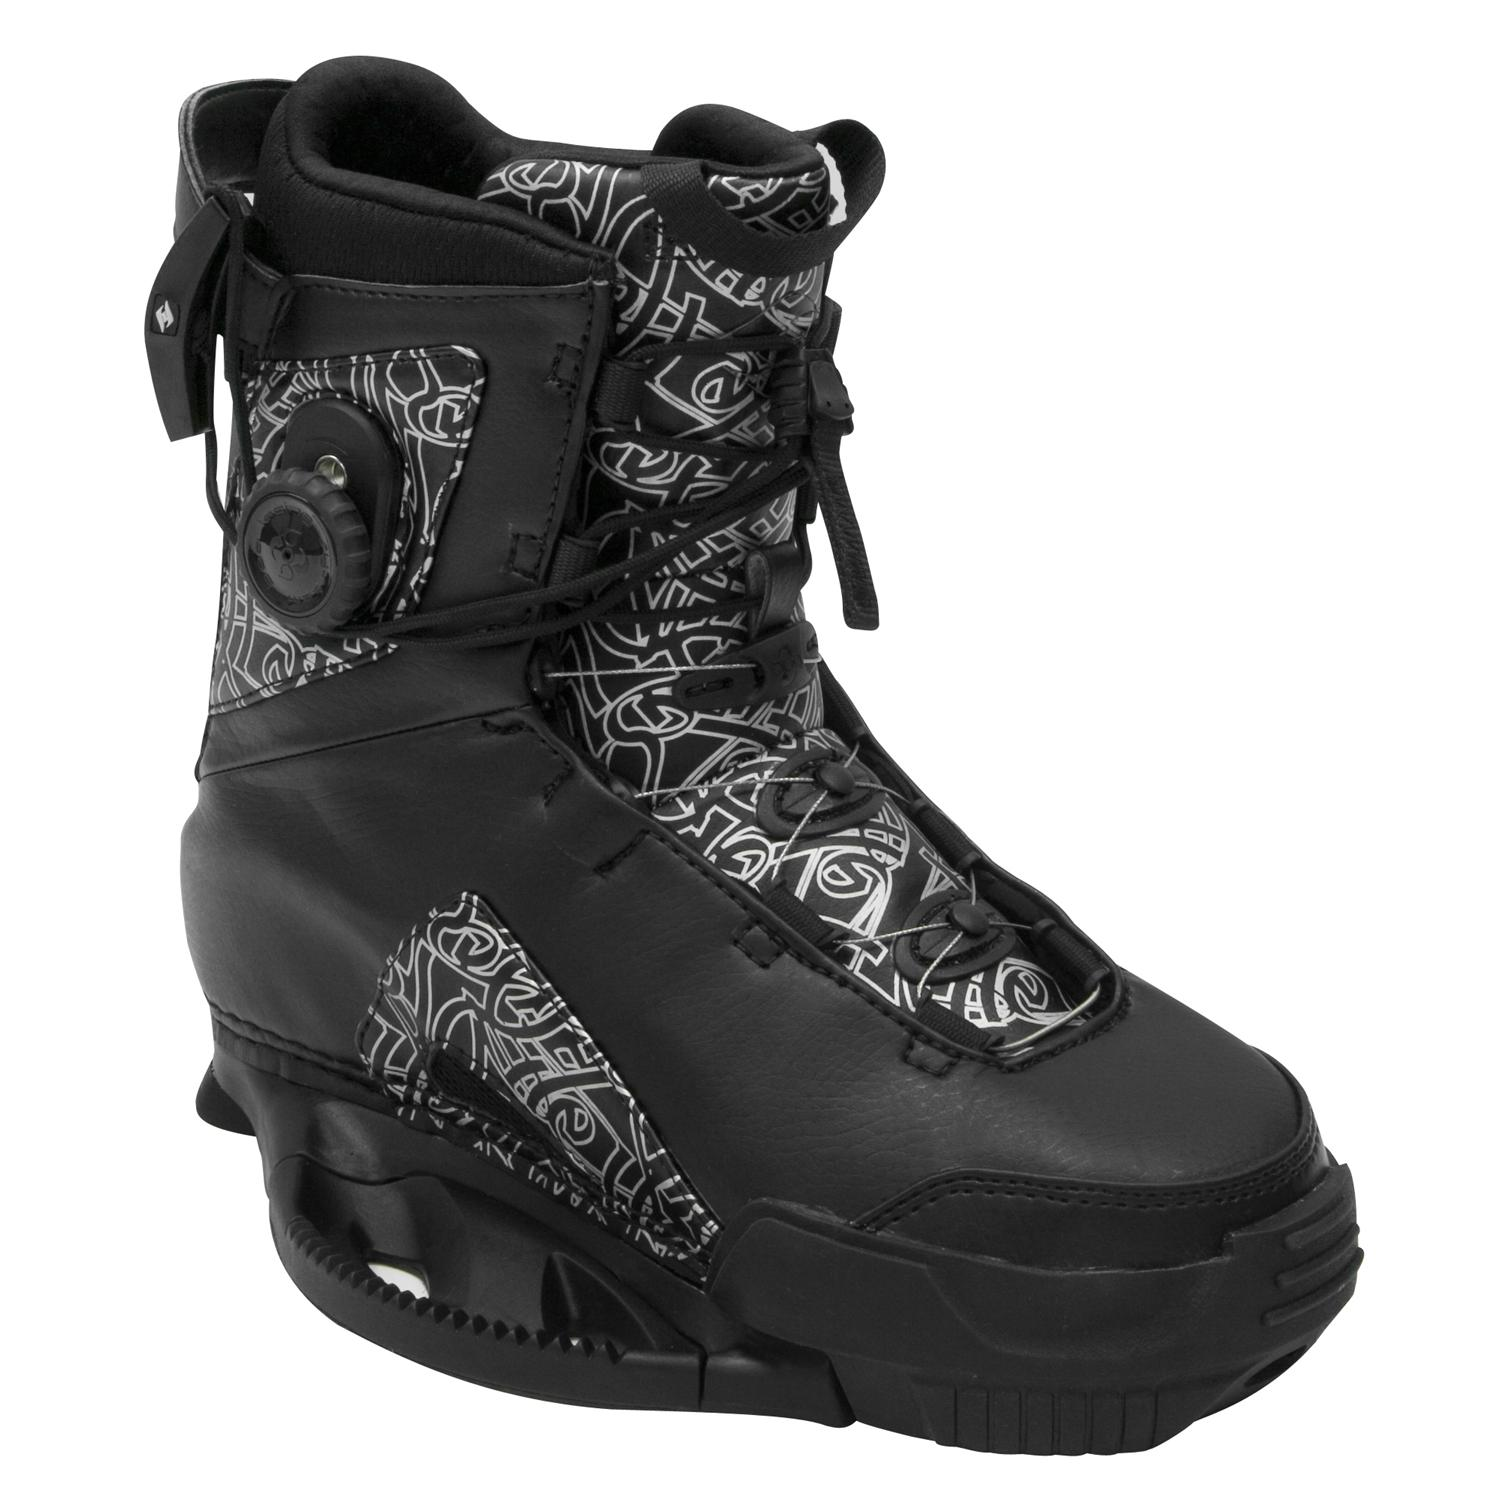 Hyperlite Audio Wakeboard Boots 2009 Evo Outlet